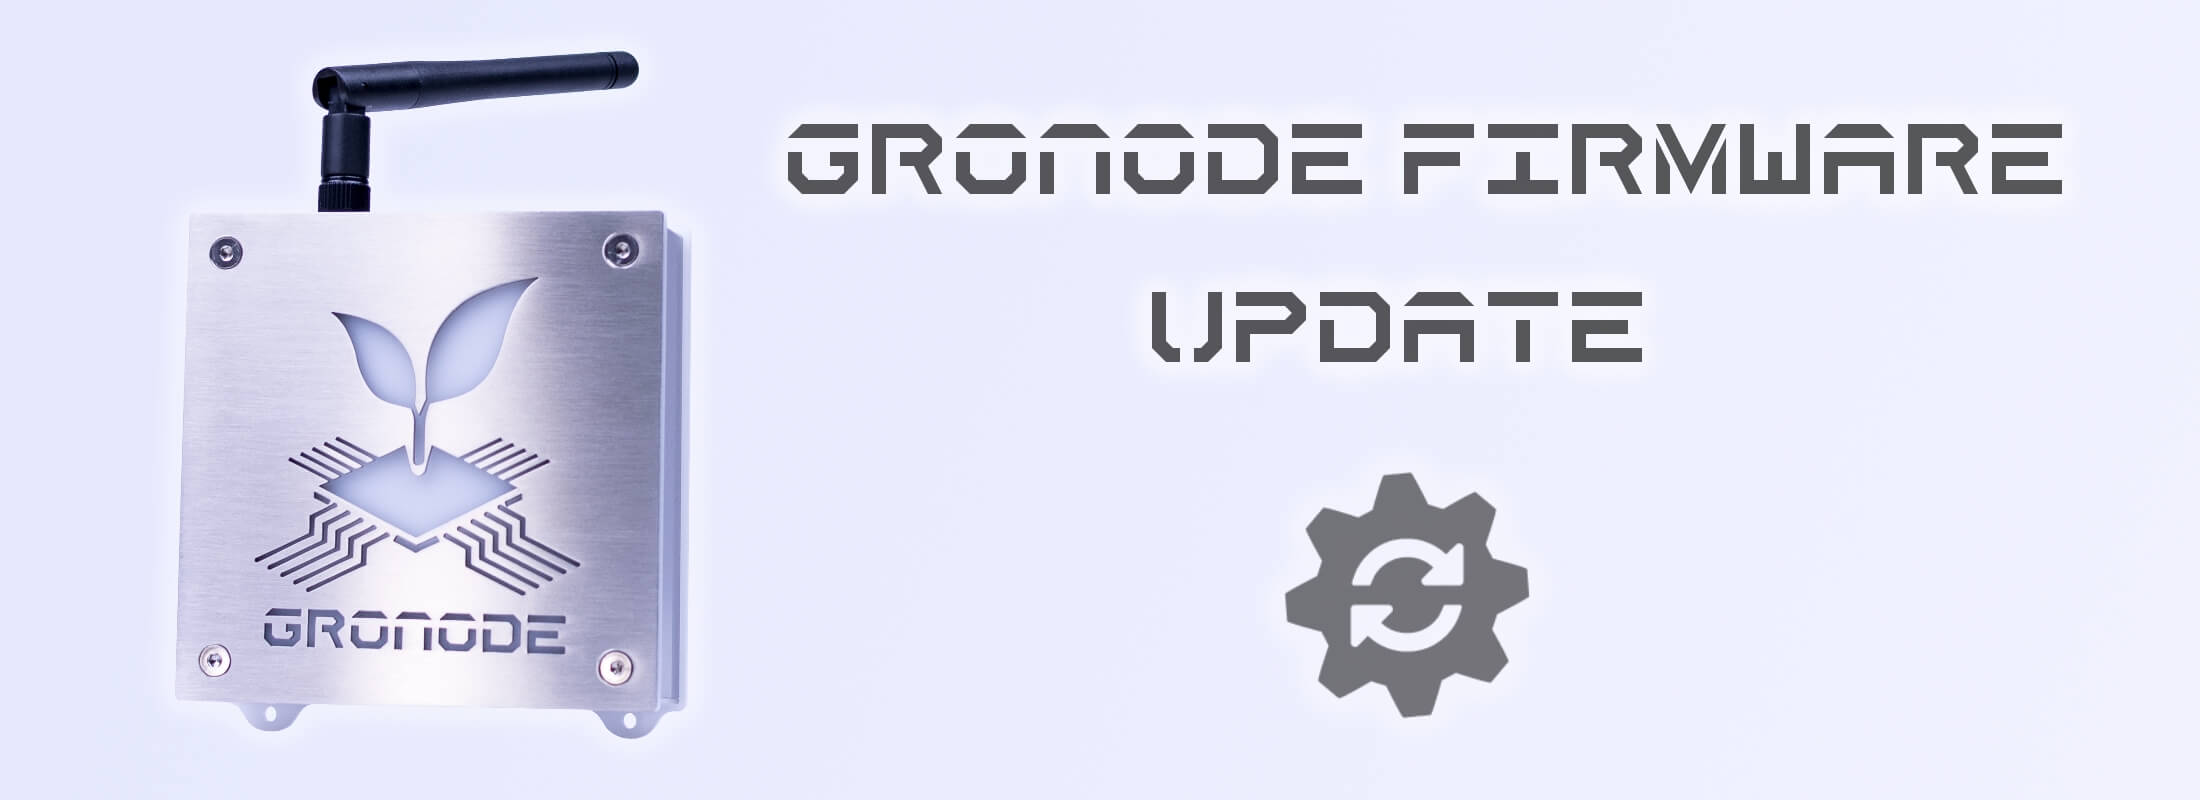 "On the left side a front view of GroNode, the core module (brain) of the GroLab™ grow controller, on the right the text ""GroNode Firmware Update"" and an update icon"